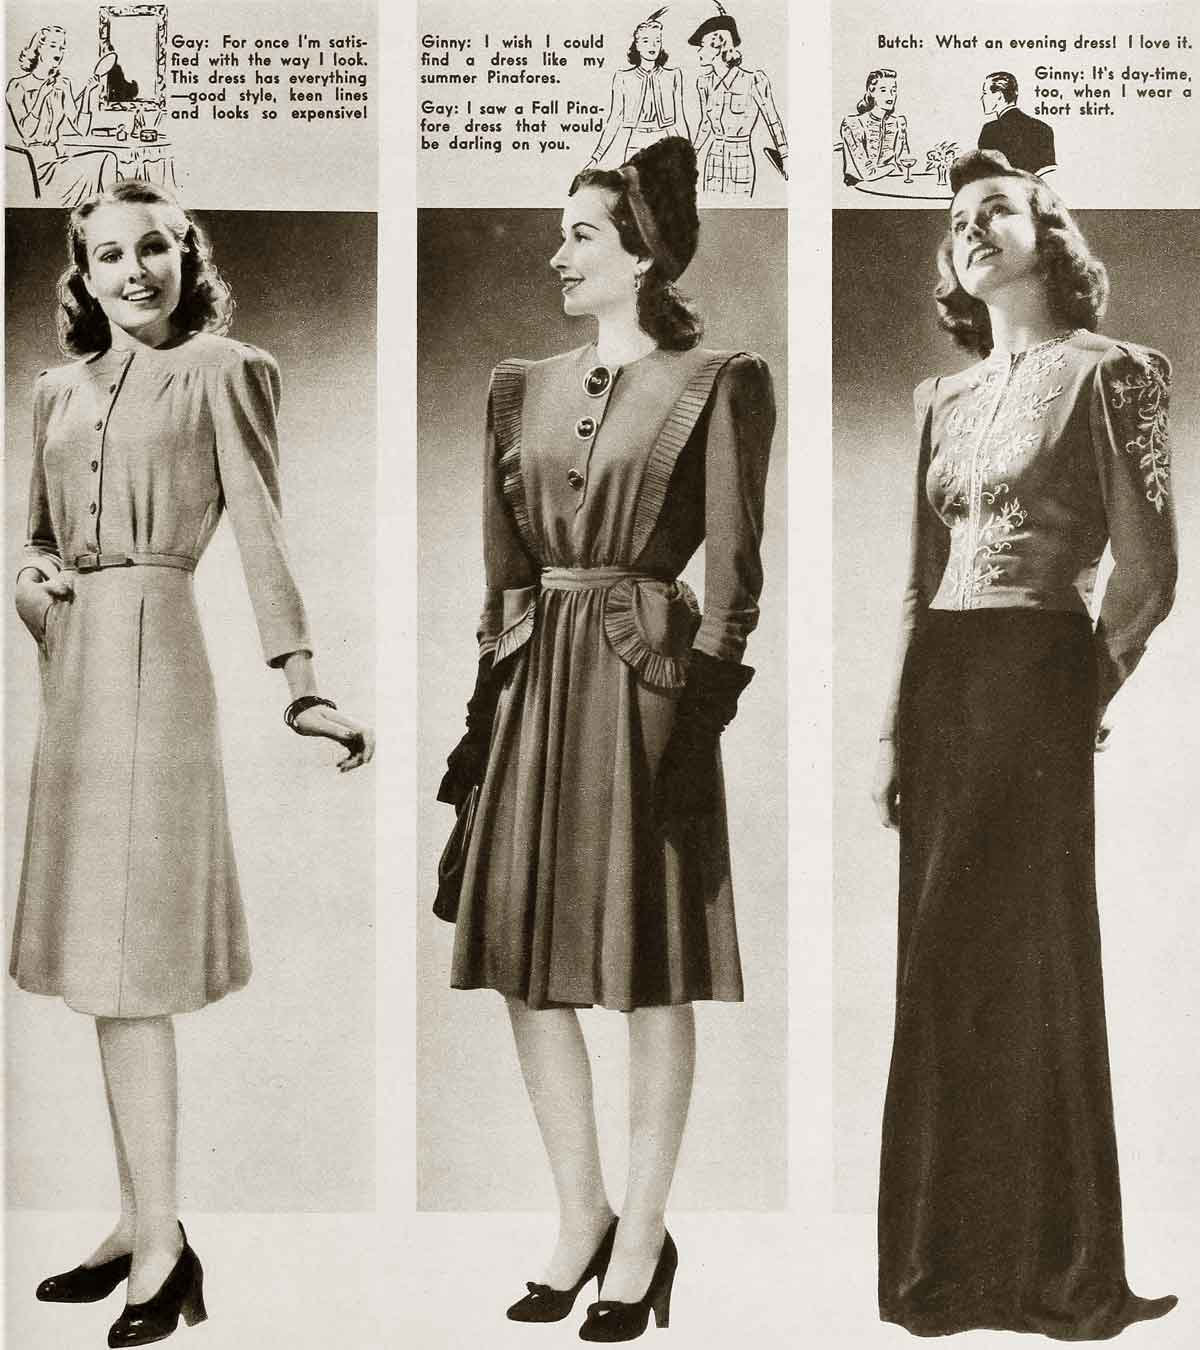 1940s Dressing Gown: 1940s Fashion - Cool Winter Styles